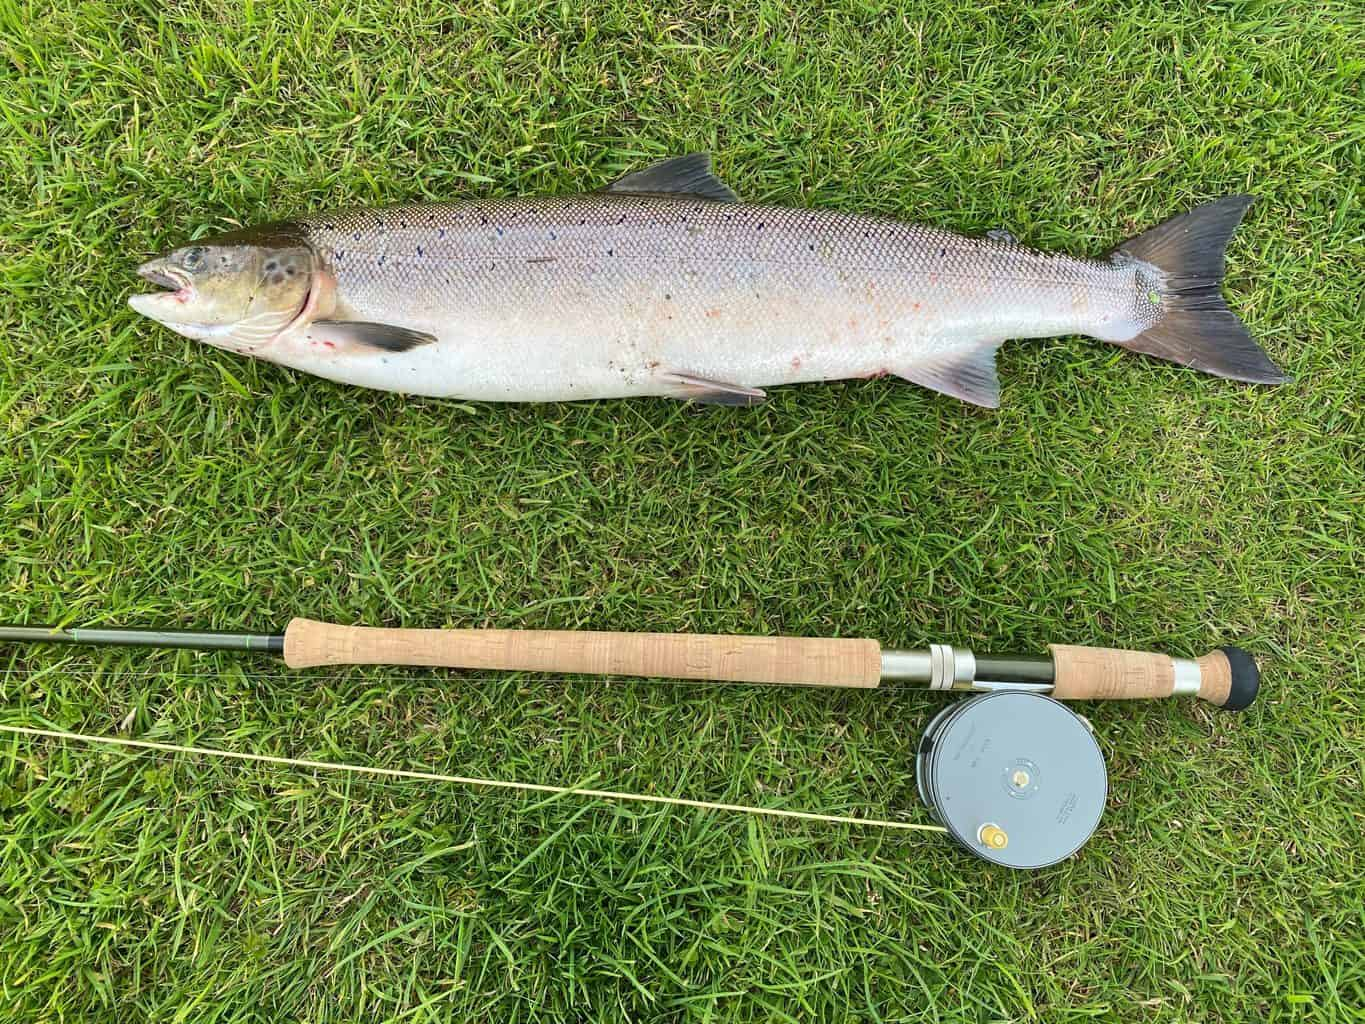 One of the best fiberglass fly rods lying next to a trout in the grass